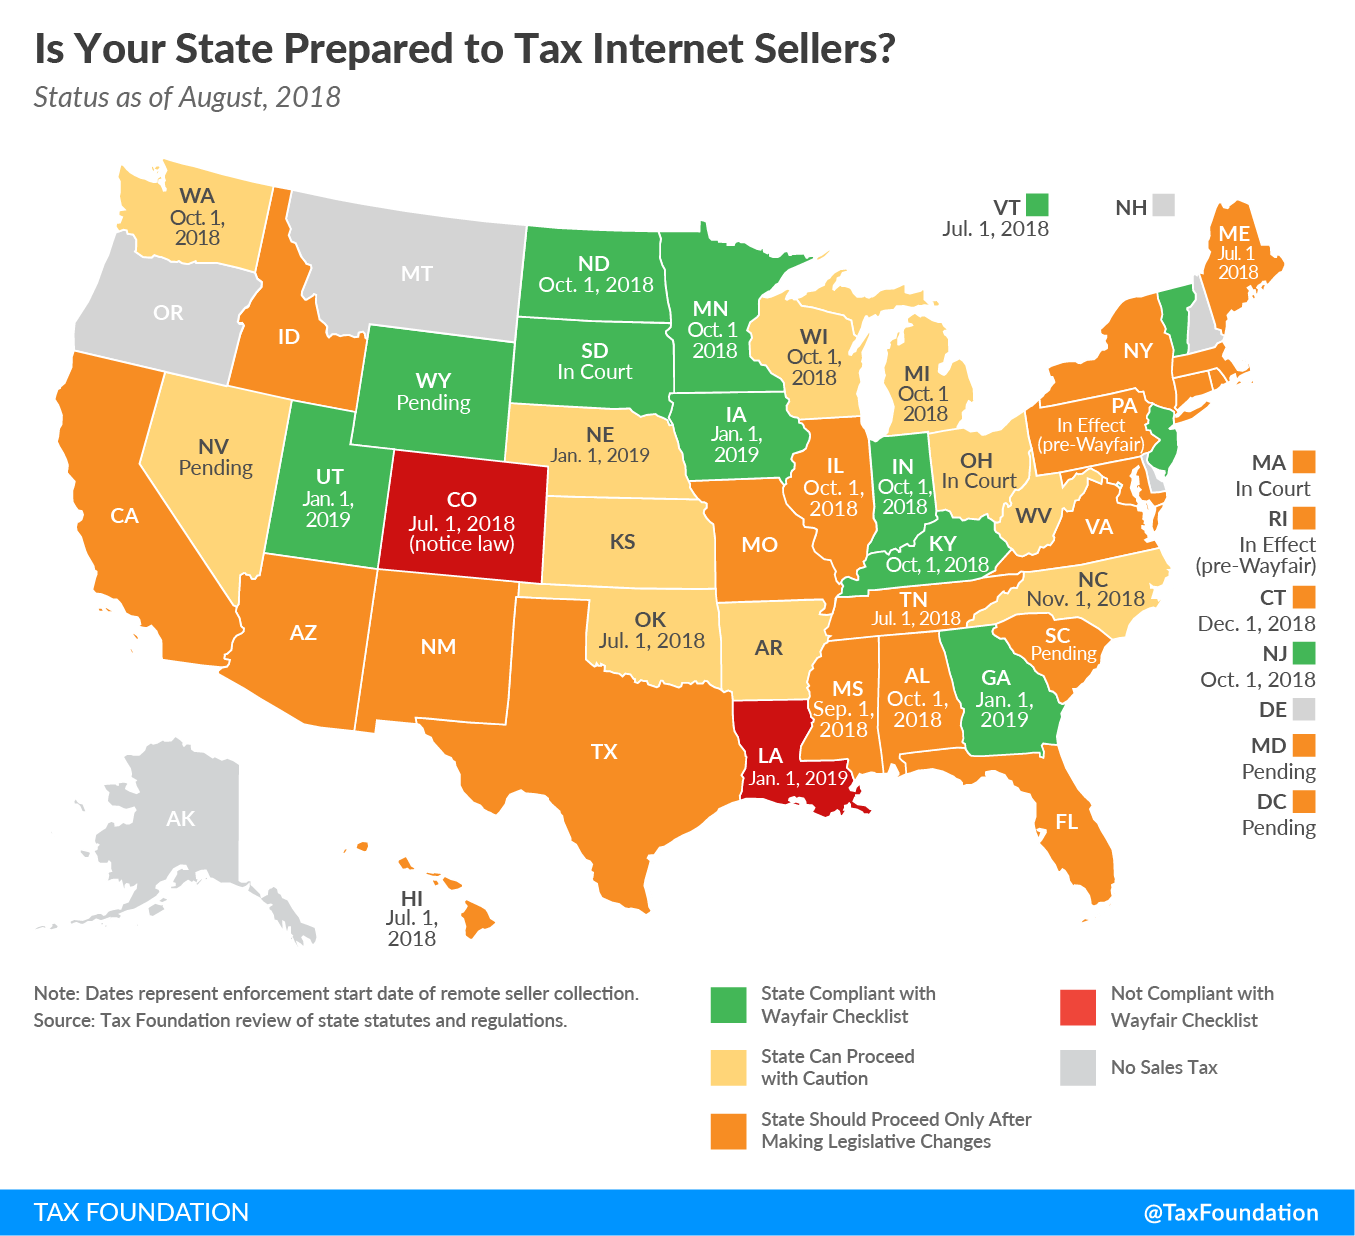 Is Your State Prepared to Tax Internet Sellers?